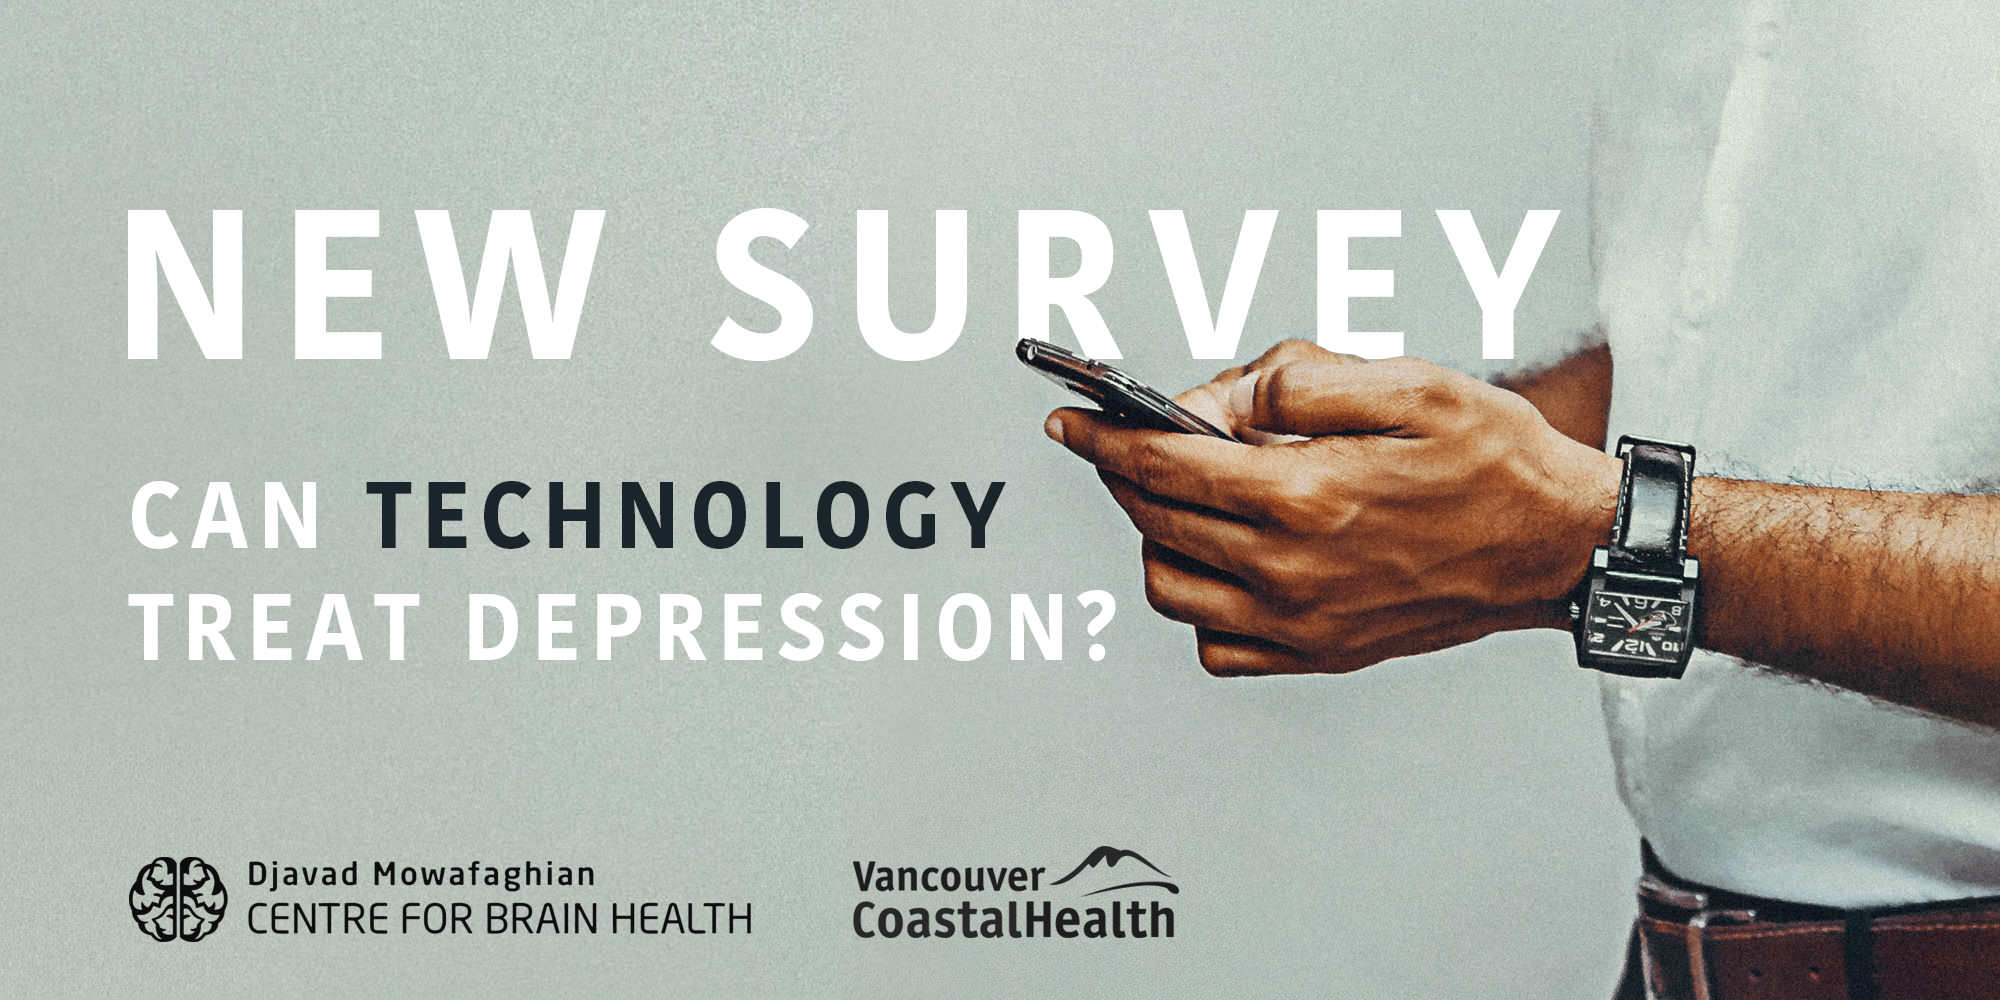 New survey! The use of technology in the management of depression